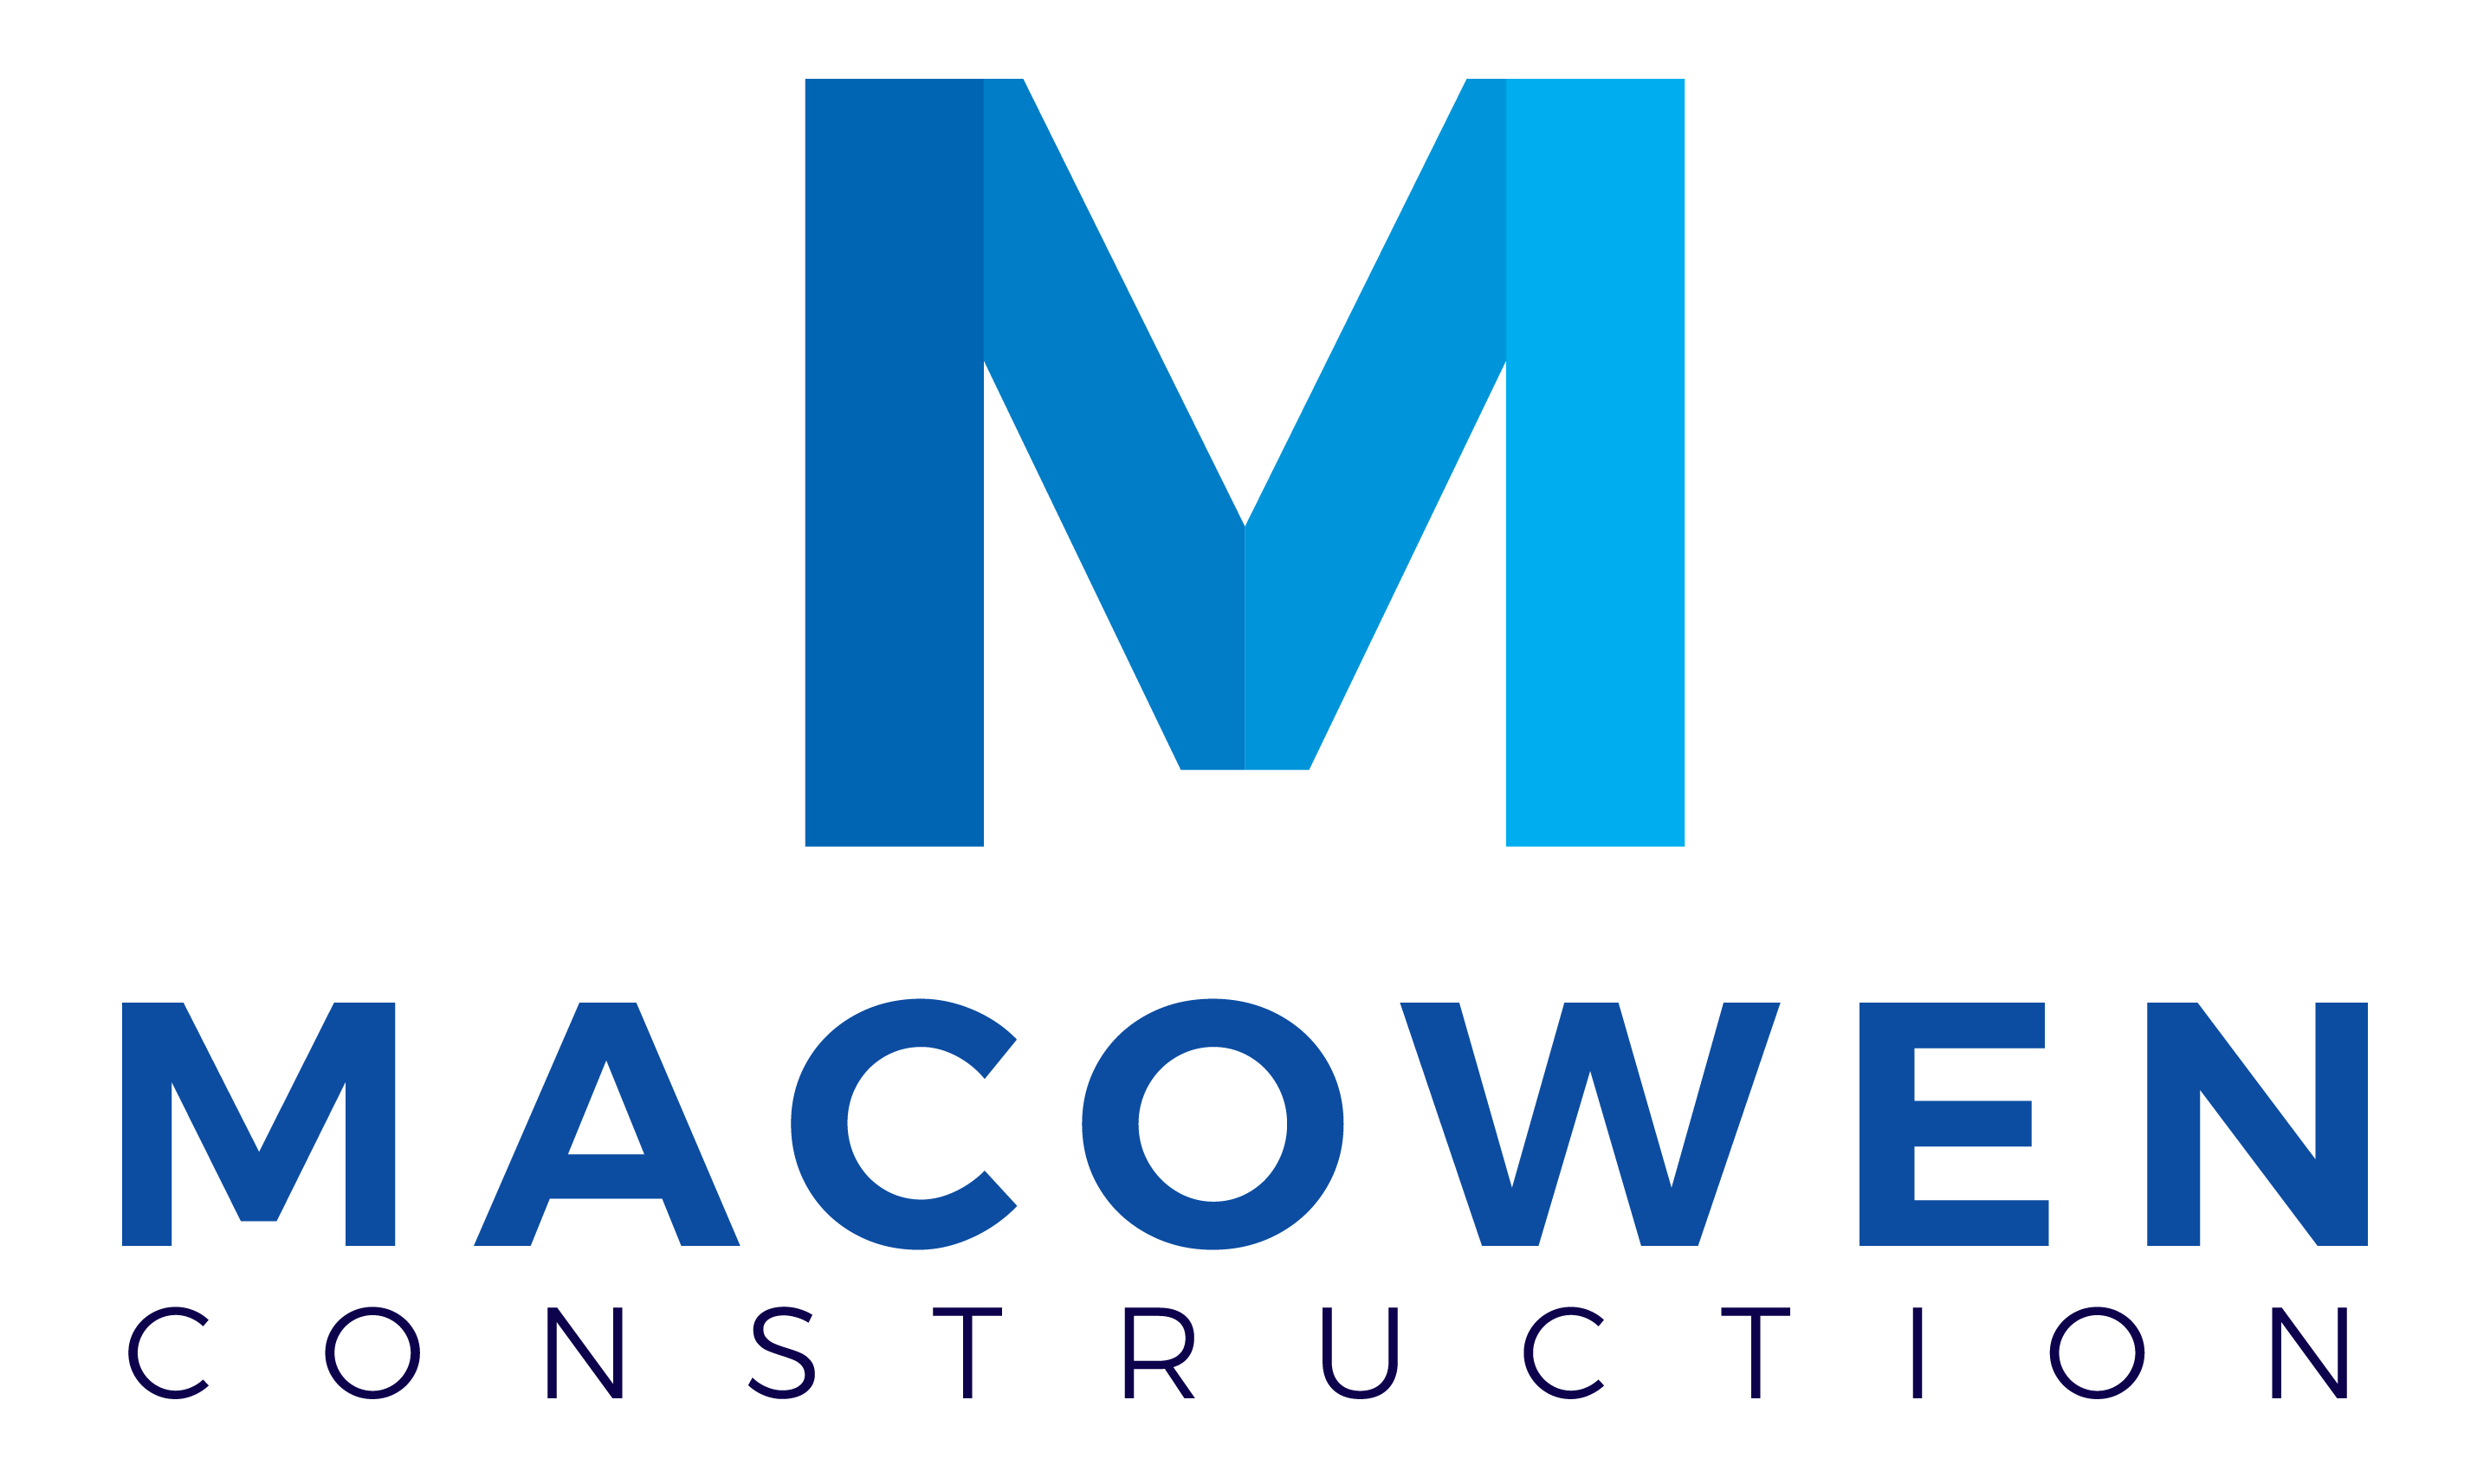 Macowen.co.uk